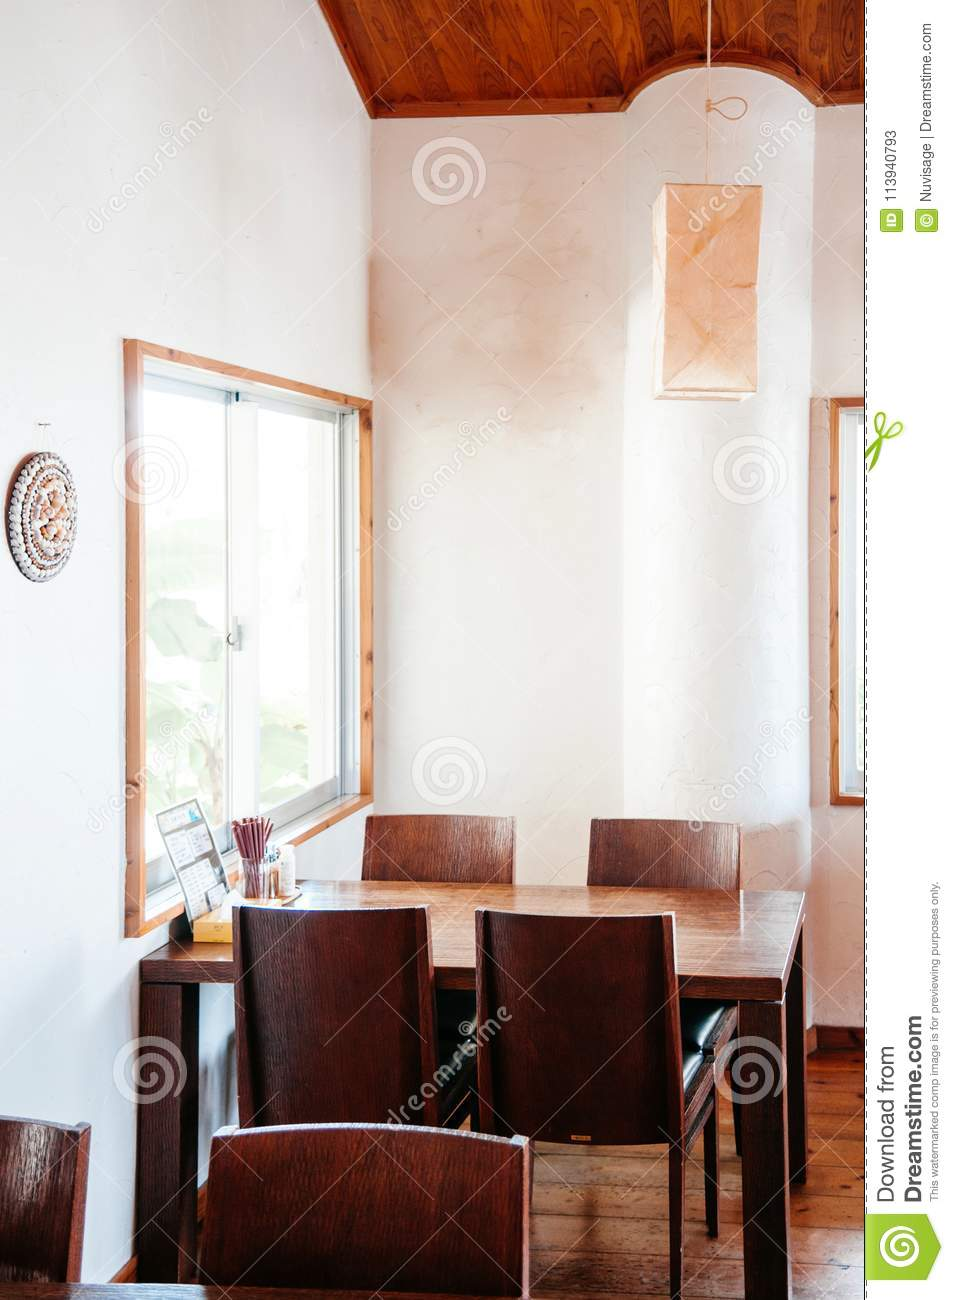 Warm Cozy Japanese Restaurant With Wooden Furniture White Wall A Editorial Stock Photo Image Of Light Restaurant 113940793